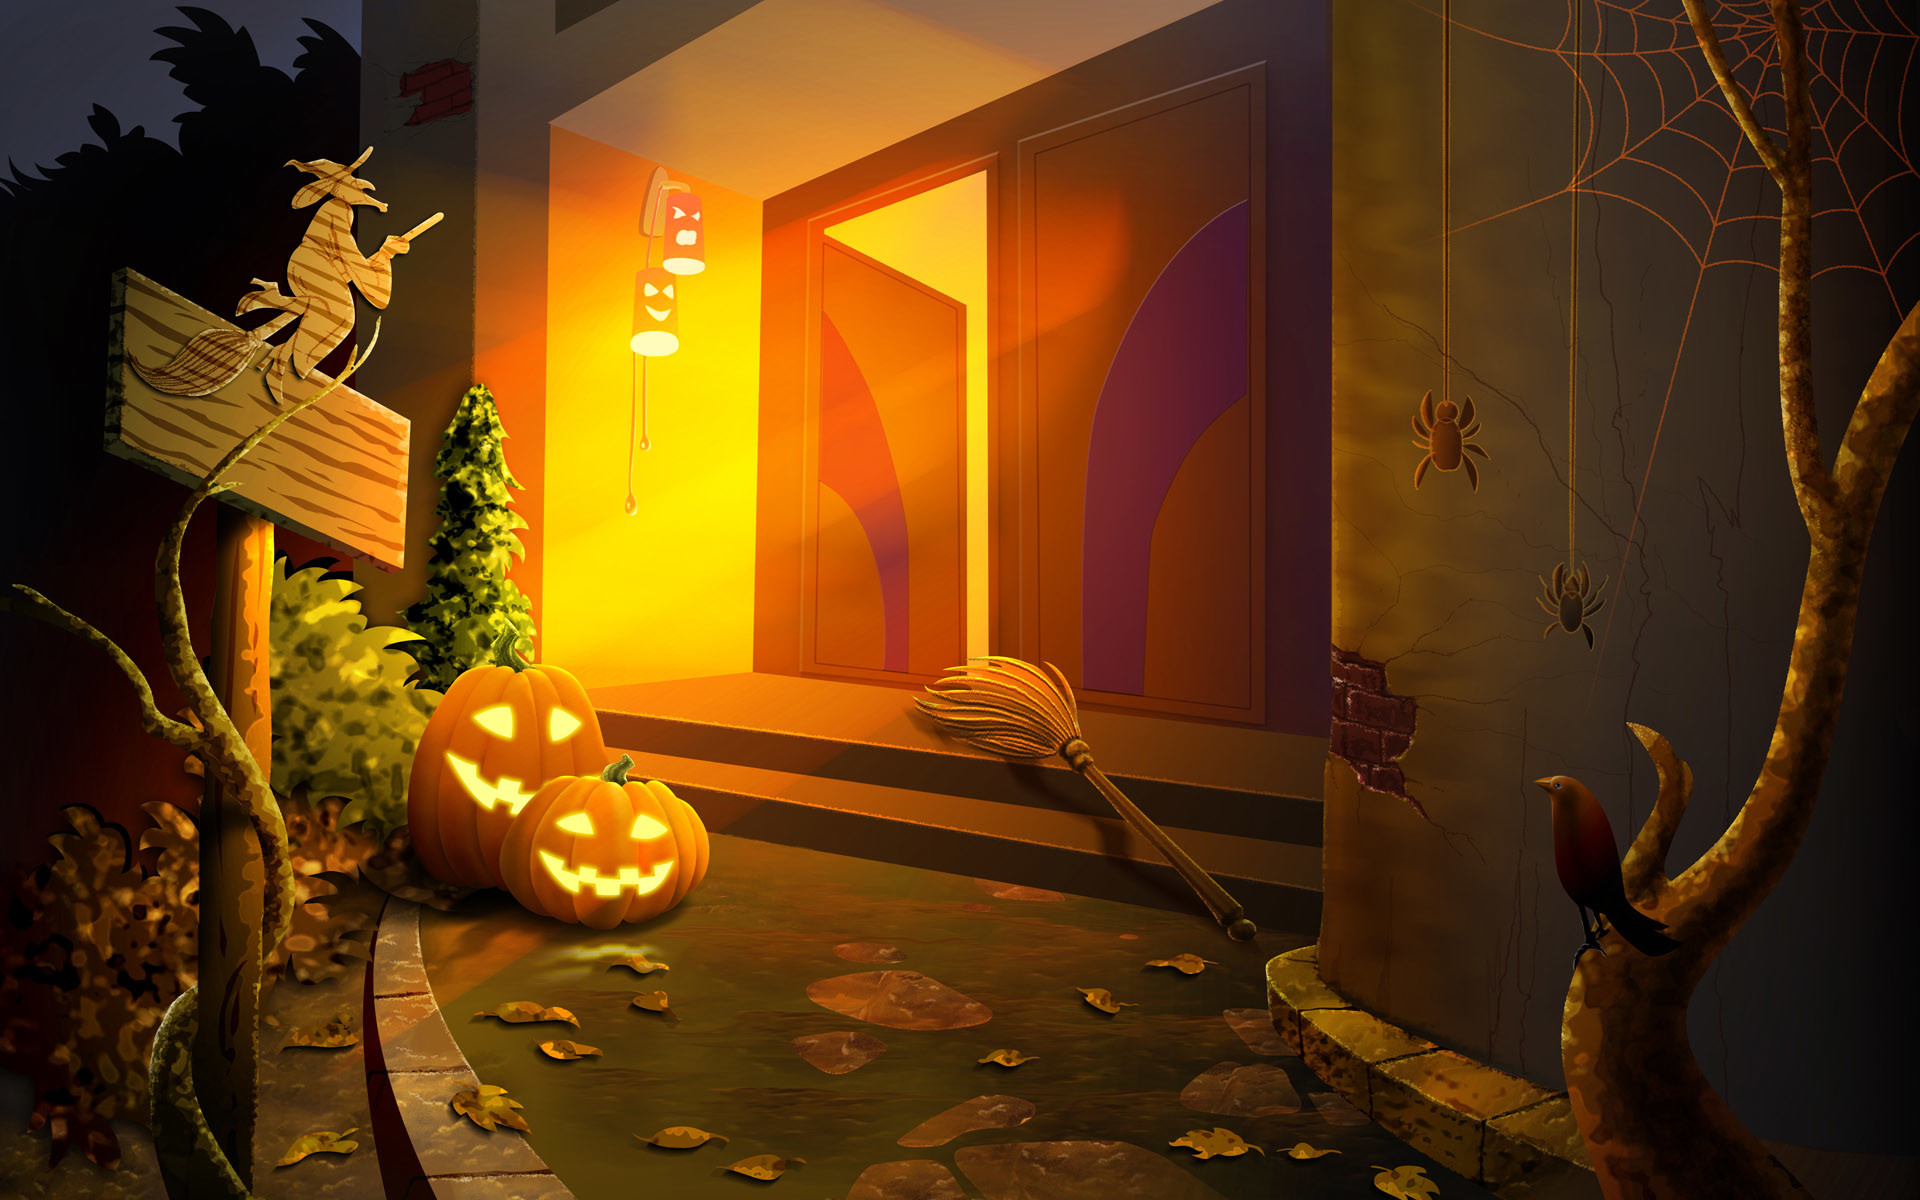 halloween-image-backgrounds-wallpapers-hd – The Holiday Ideas … Halloween  Image Backgrounds Wallpapers Hd The Holiday Ideas